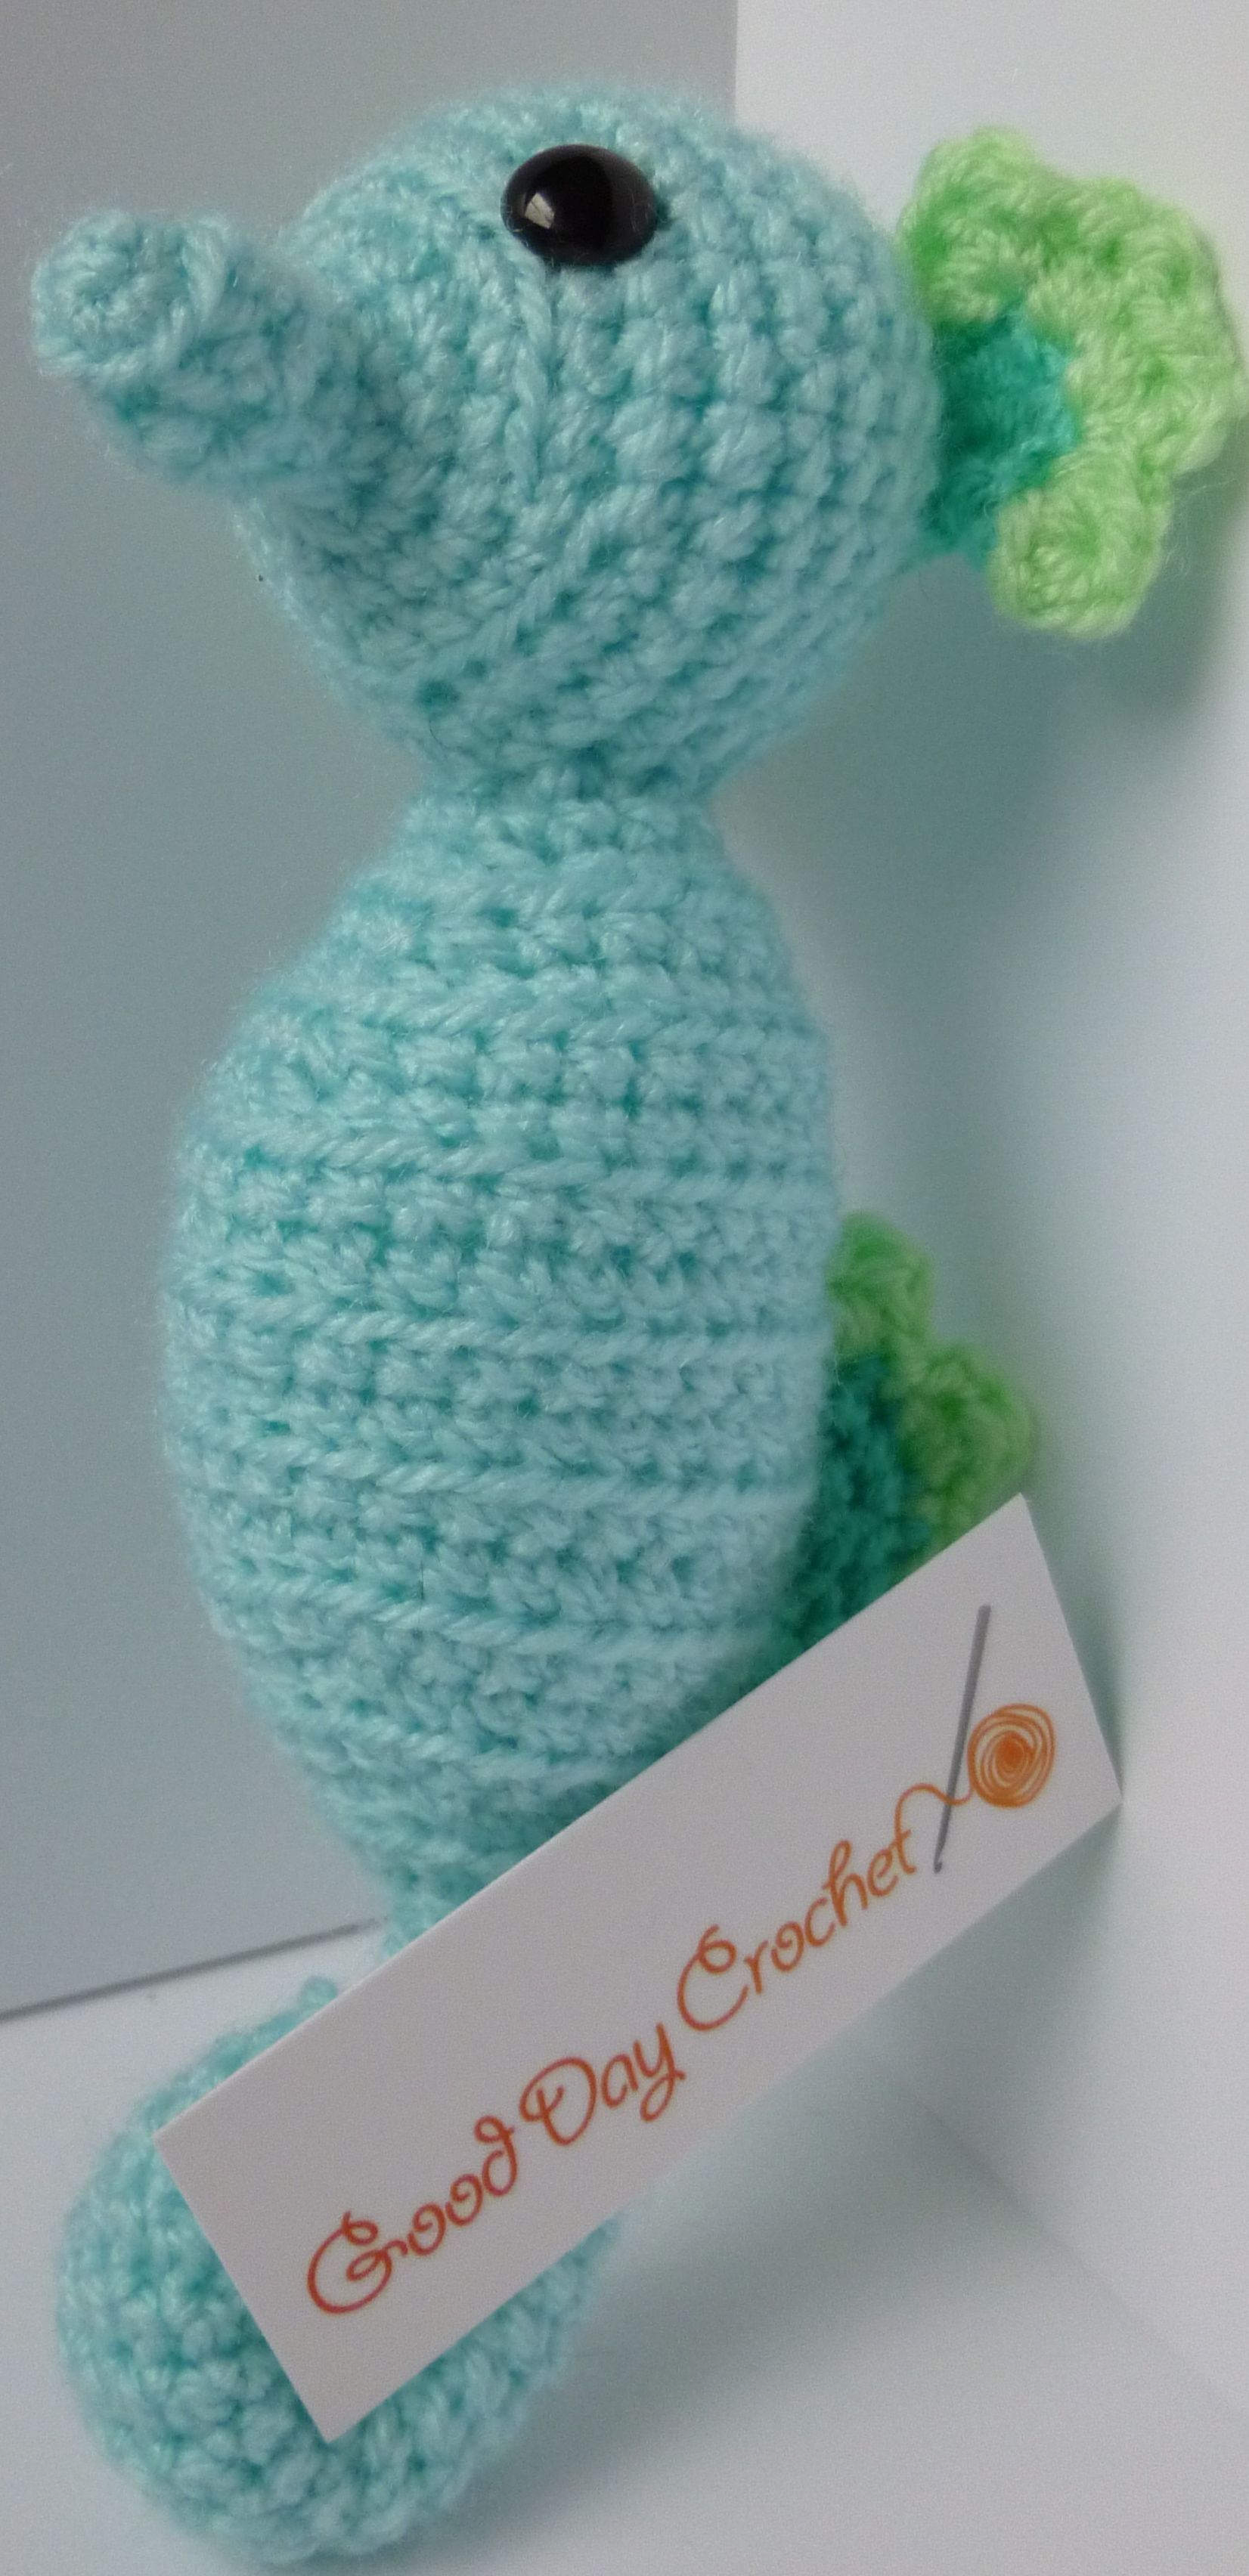 Crochet seahorse crochet pinterest seahorses crochet and ravelry crochet seahorse pattern by good day crochet free pattern thanks so xox bankloansurffo Image collections